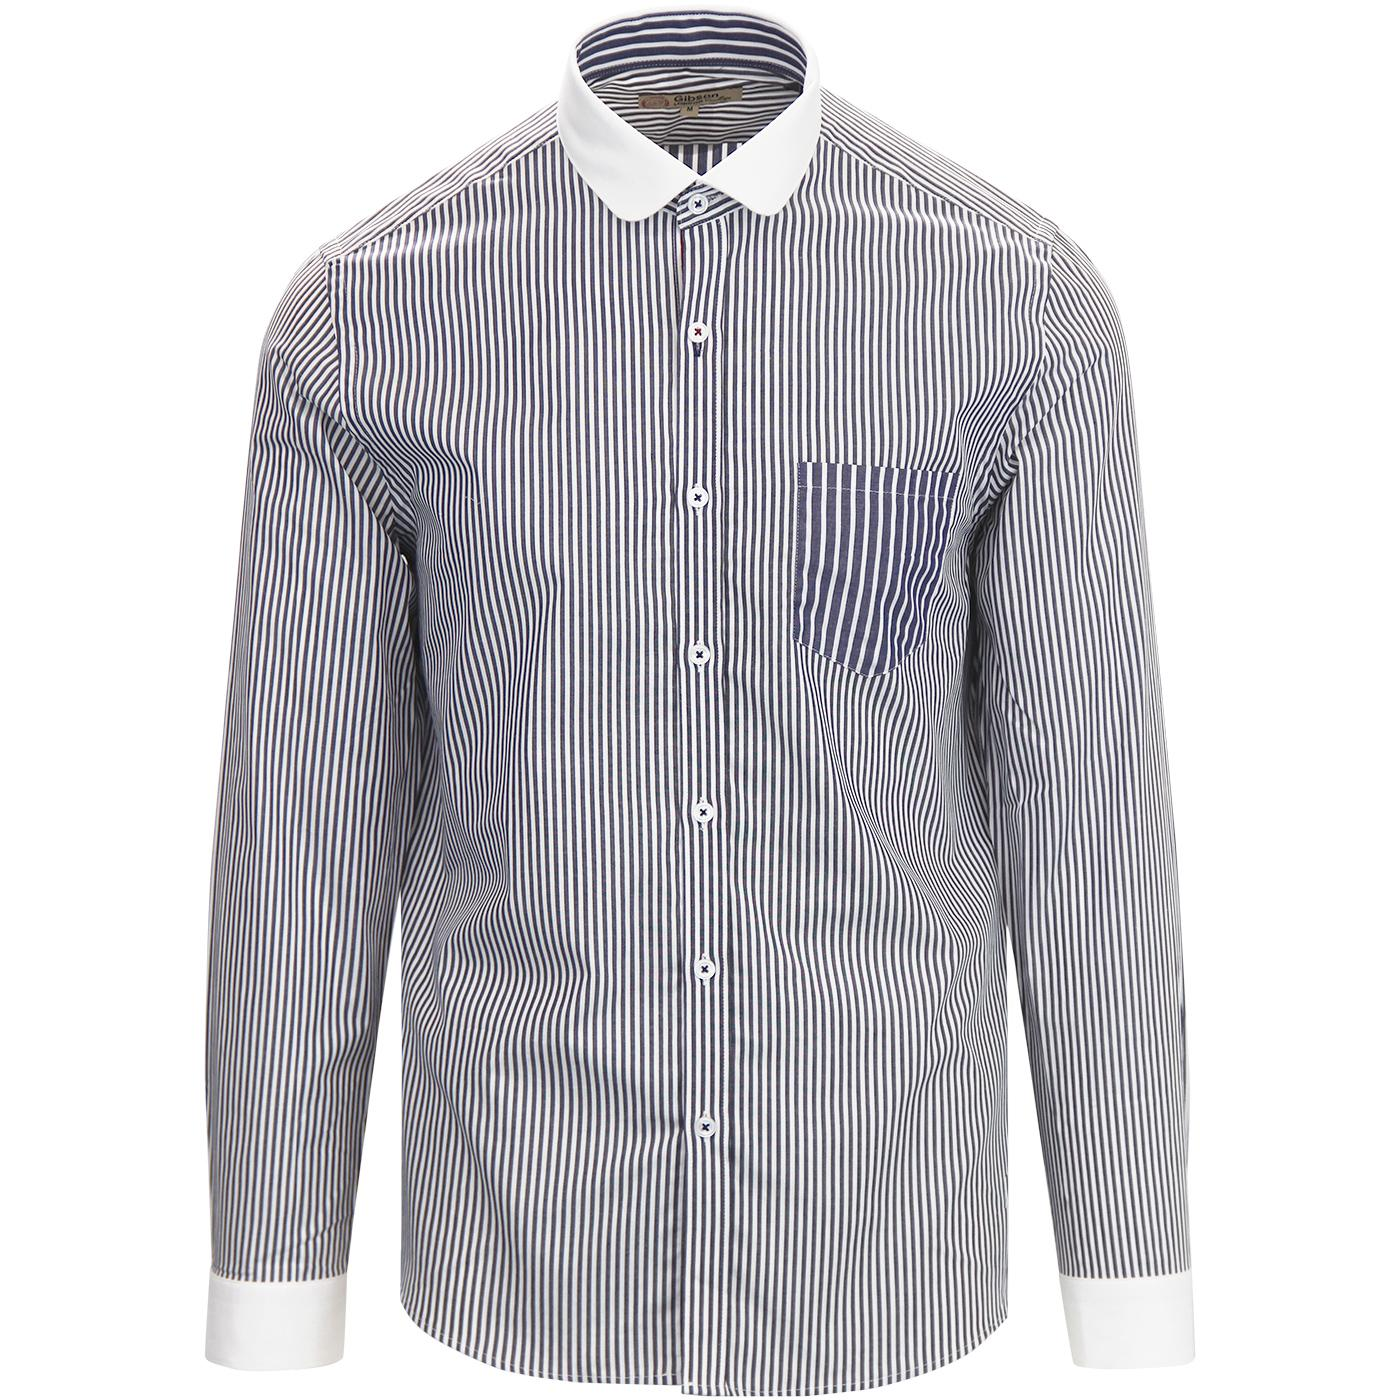 best supplier fresh styles limited style GIBSON LONDON Mod Penny Collar Stripe Shirt NAVY